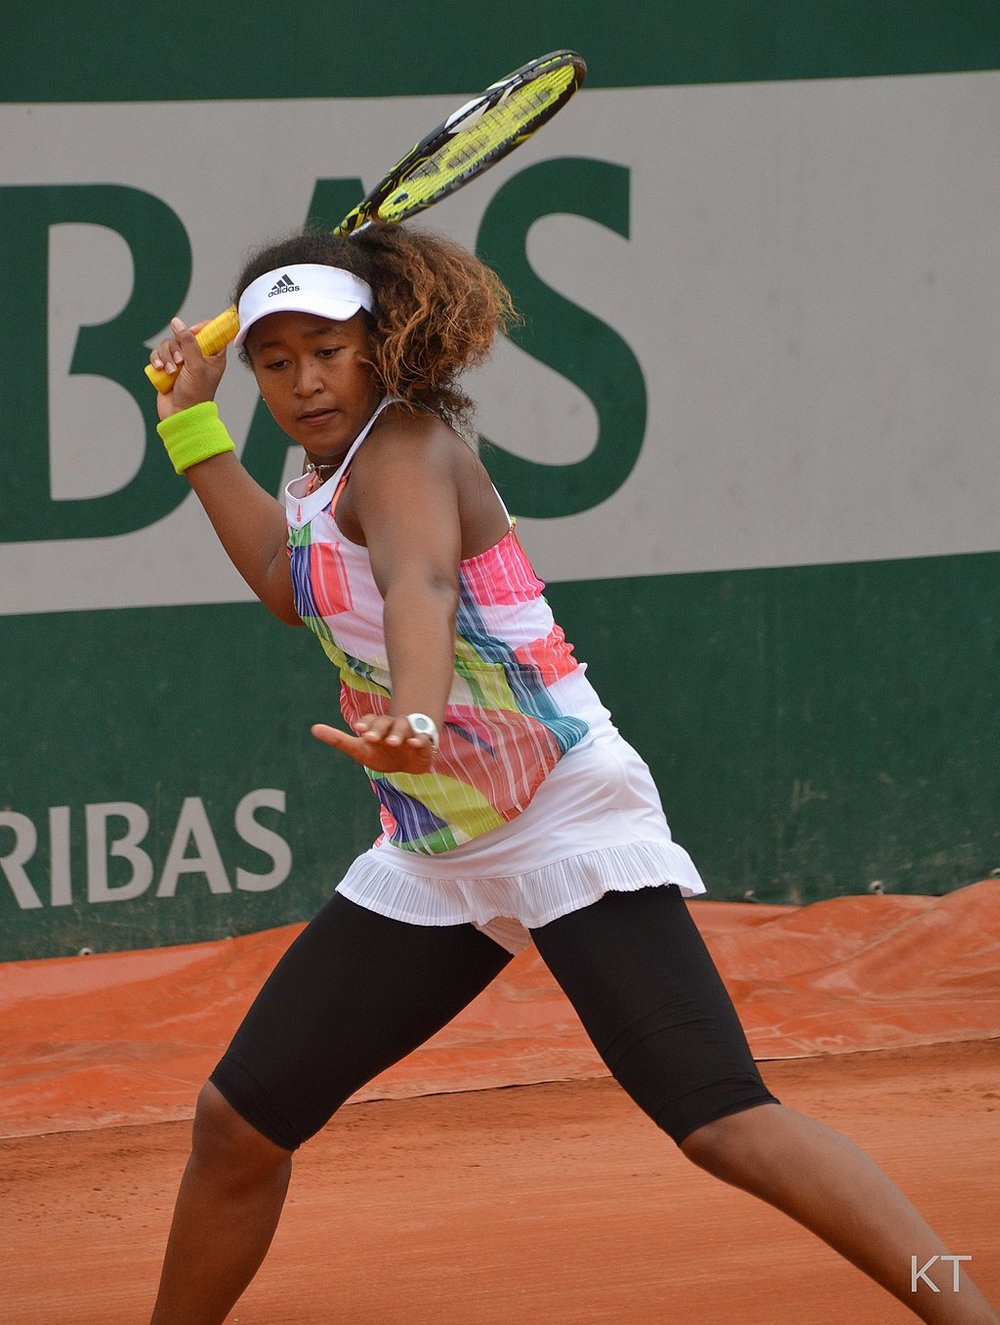 By Carine06 from UK (Naomi Osaka) [CC BY-SA 2.0  (https://creativecommons.org/licenses/by-sa/2.0)], via Wikimedia Commons